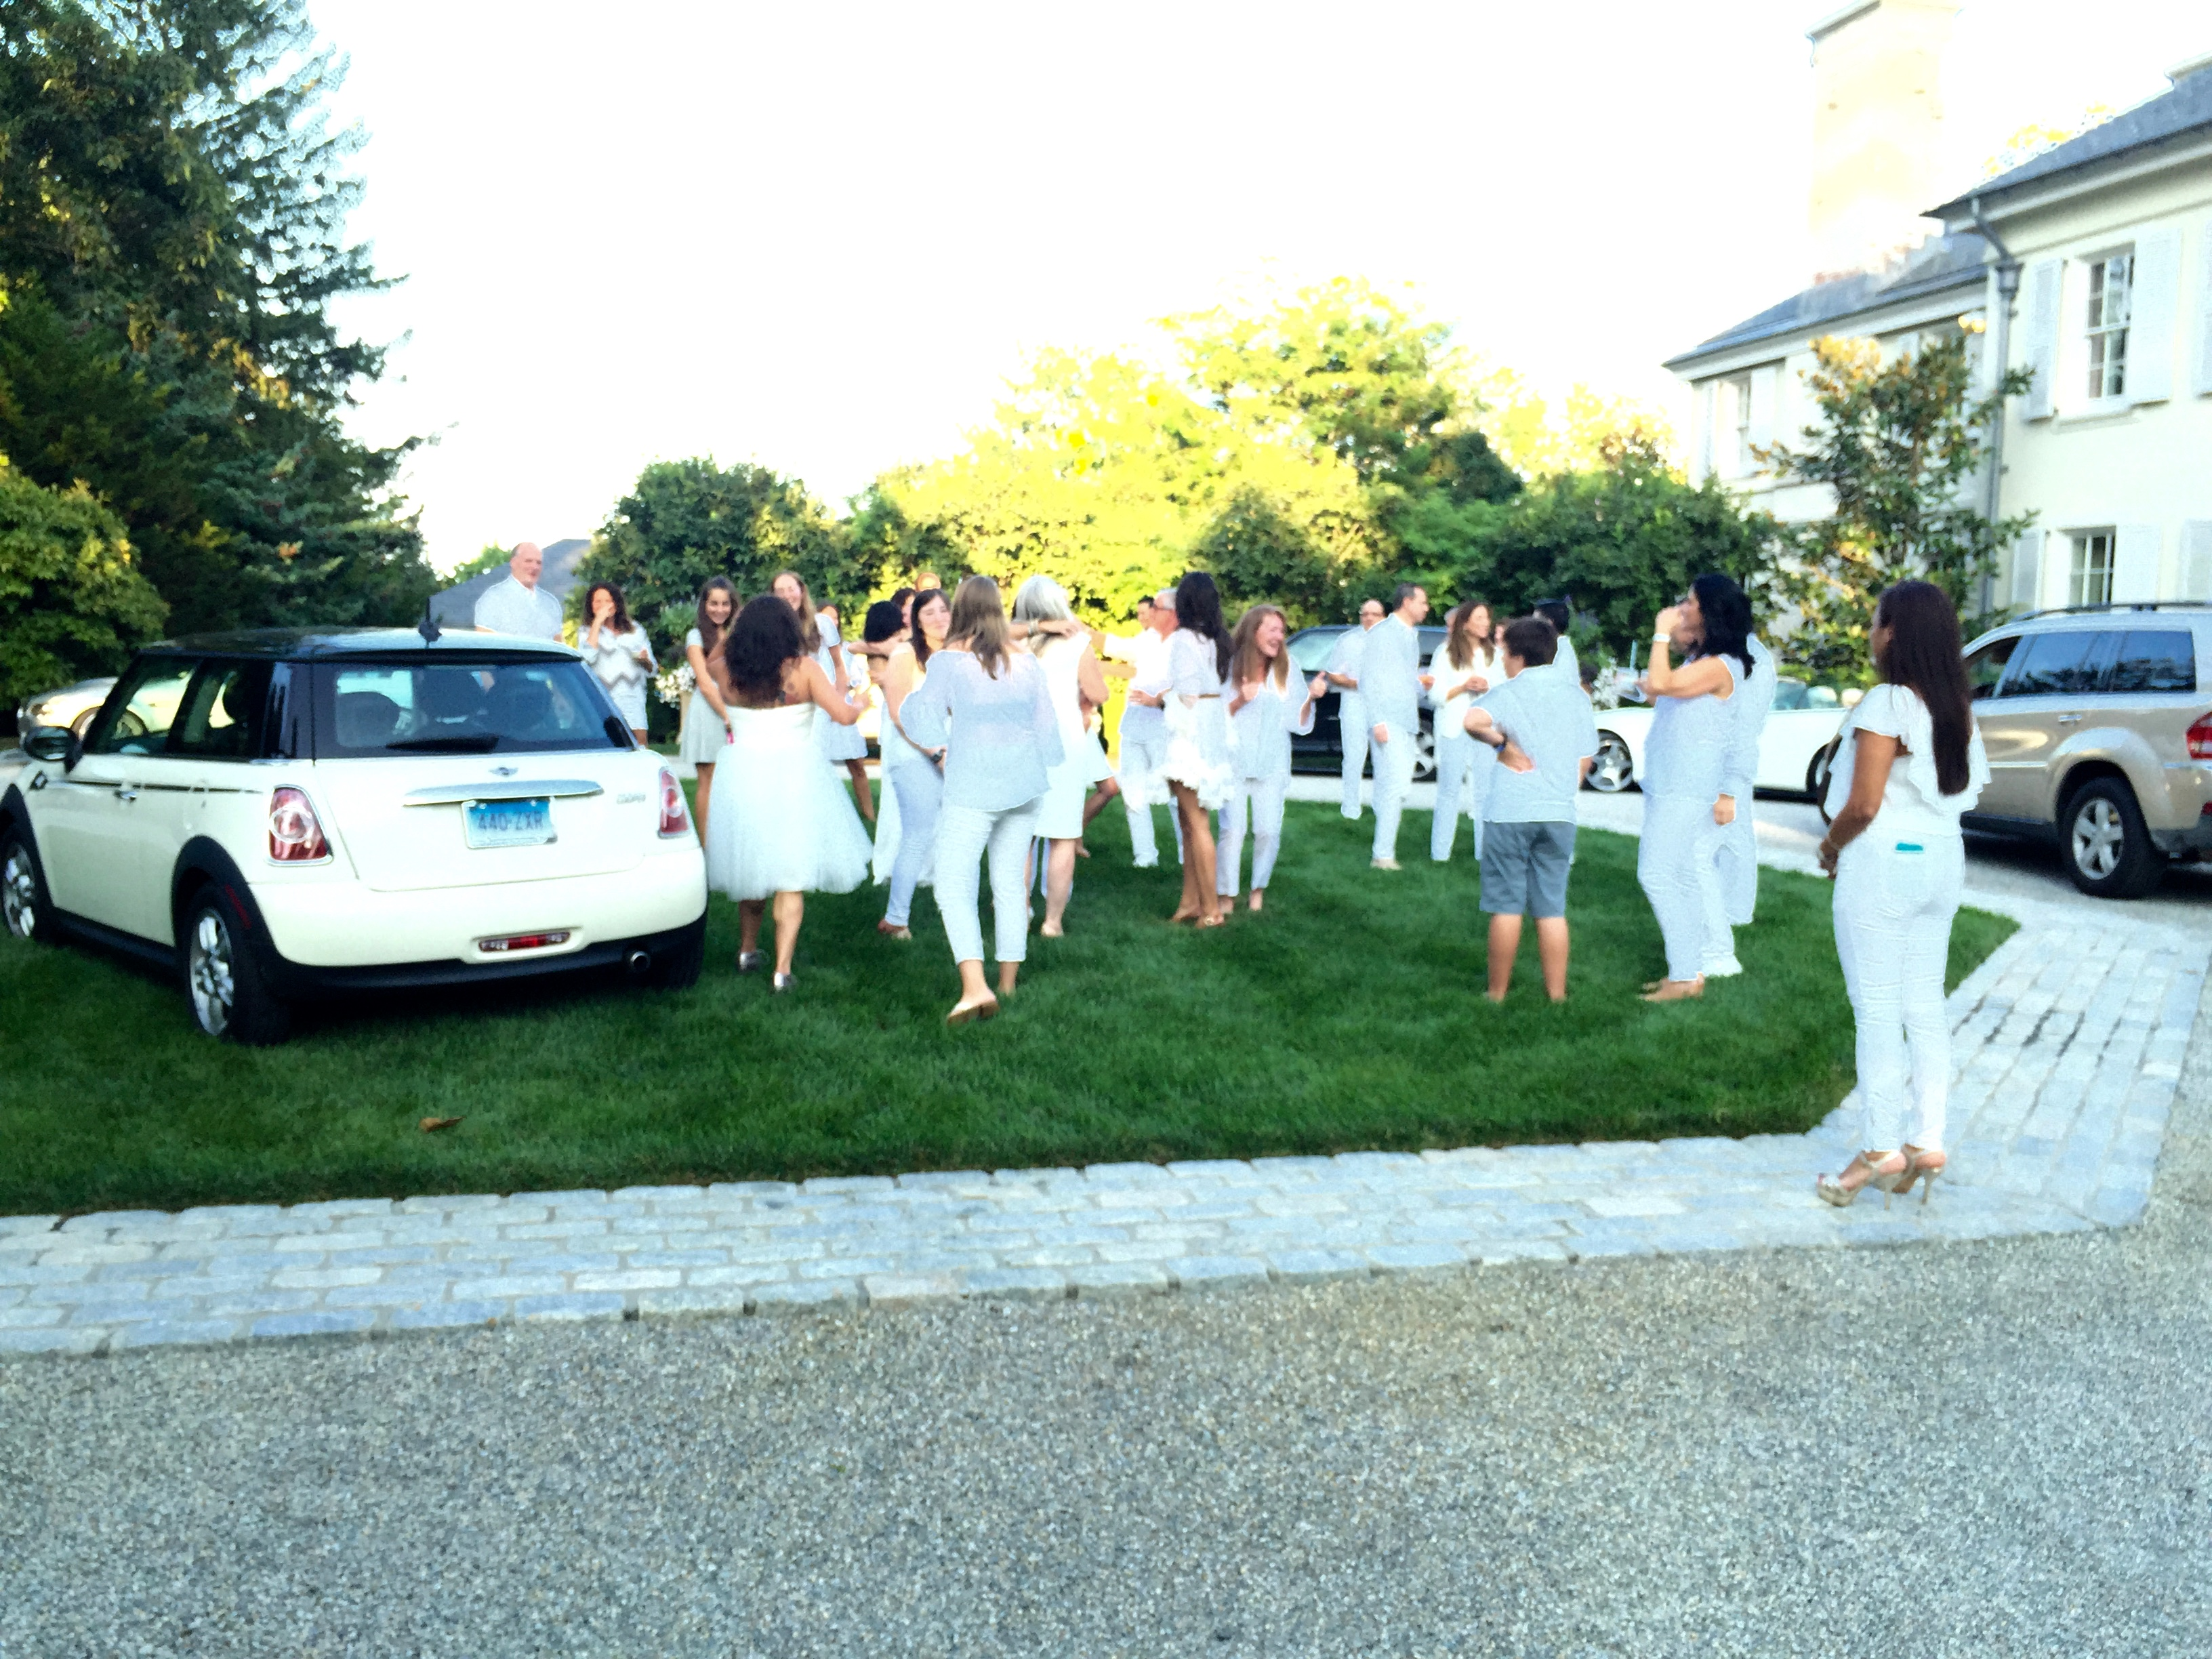 Summer Surprise Party - Carolyn Bender Events